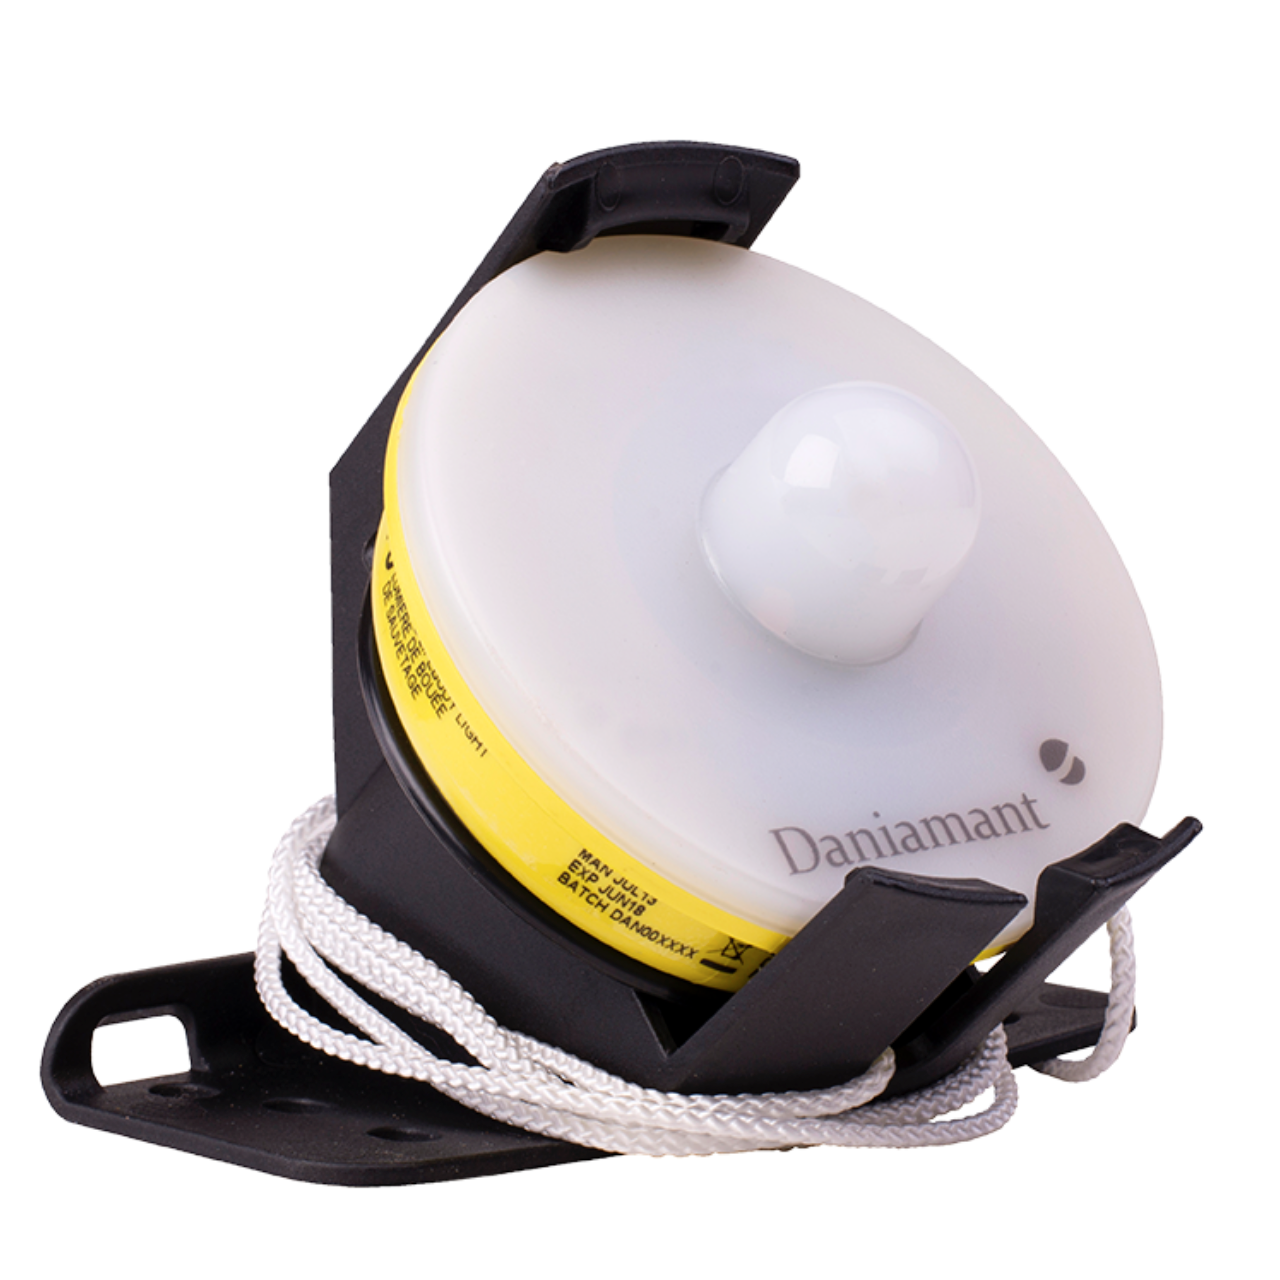 Daniamant L170 lifebuoy light recreational